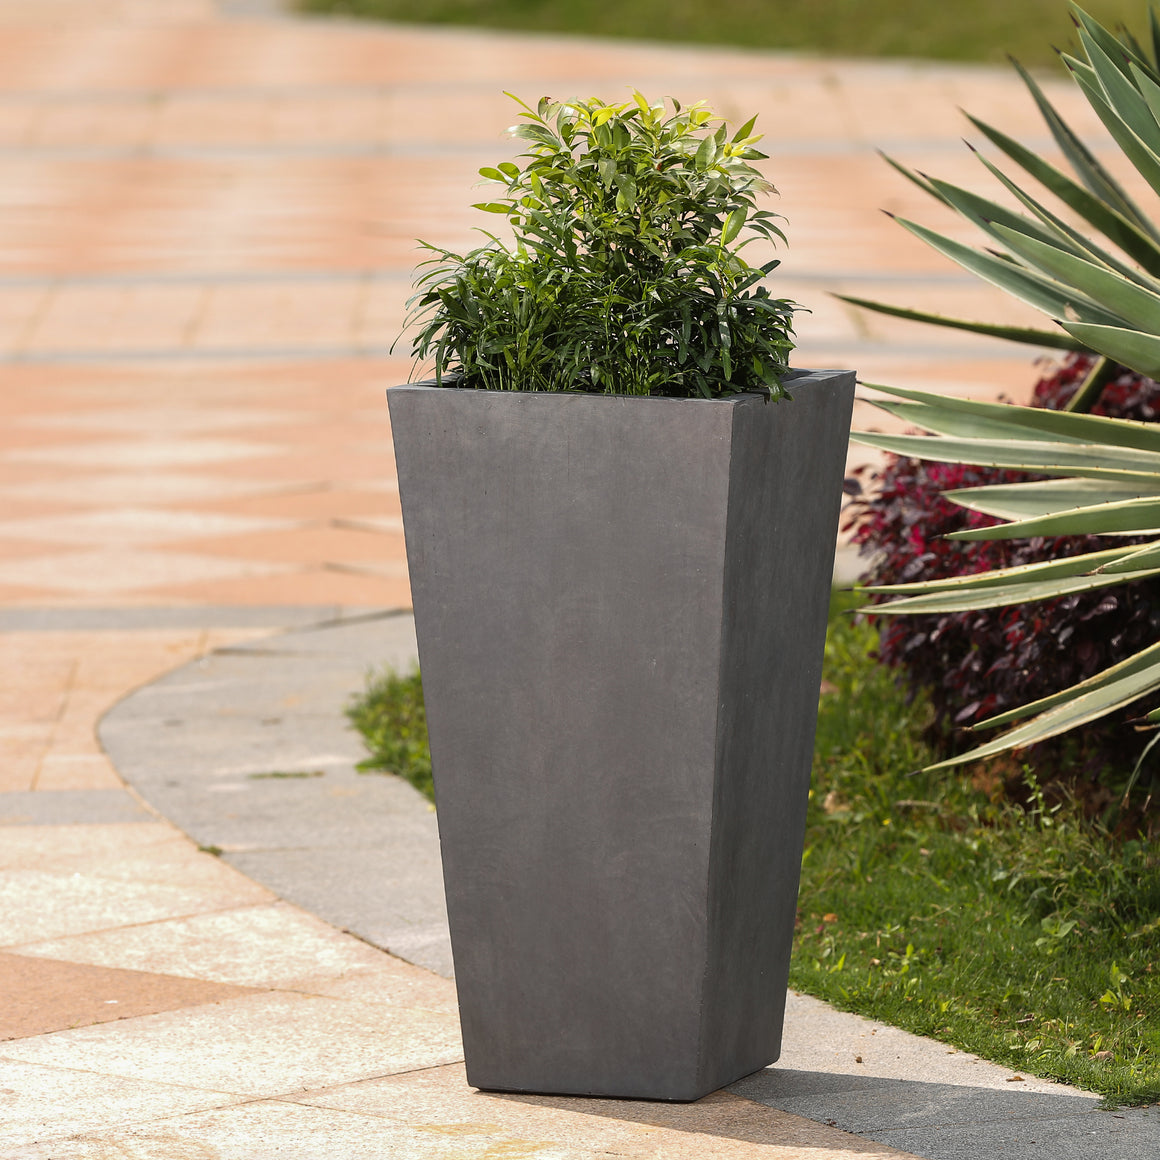 Garden Planter - Tapered Stone Finish Tall Planter (Medium) on paved patio planted with greens